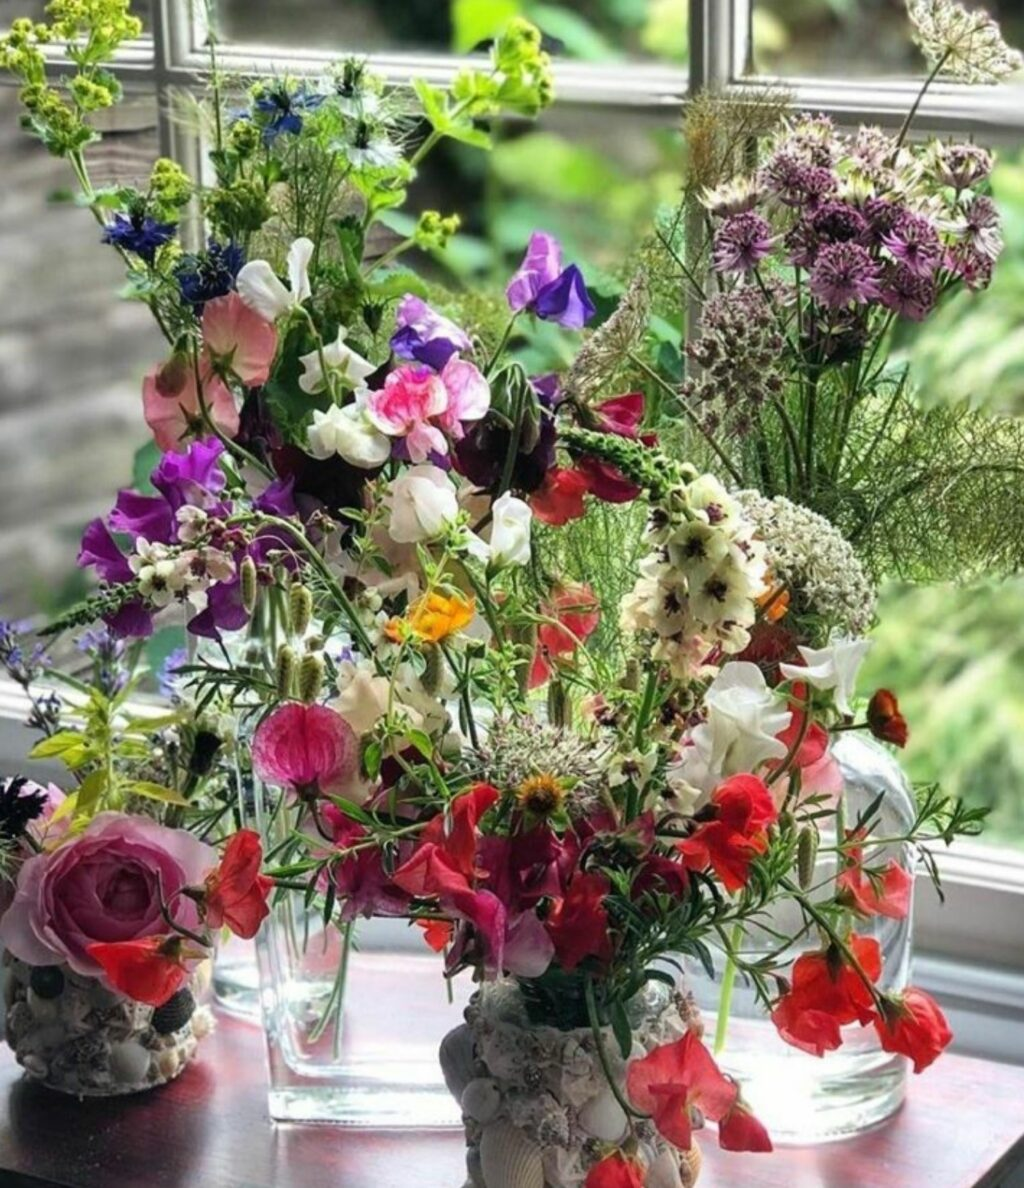 A collection of vases sit on a polished wood table in front of a window. They are filled with British cut flowers - sweet peas, astrantia, quaking grass, lady's mantle, roses.... by Posy Flowers.